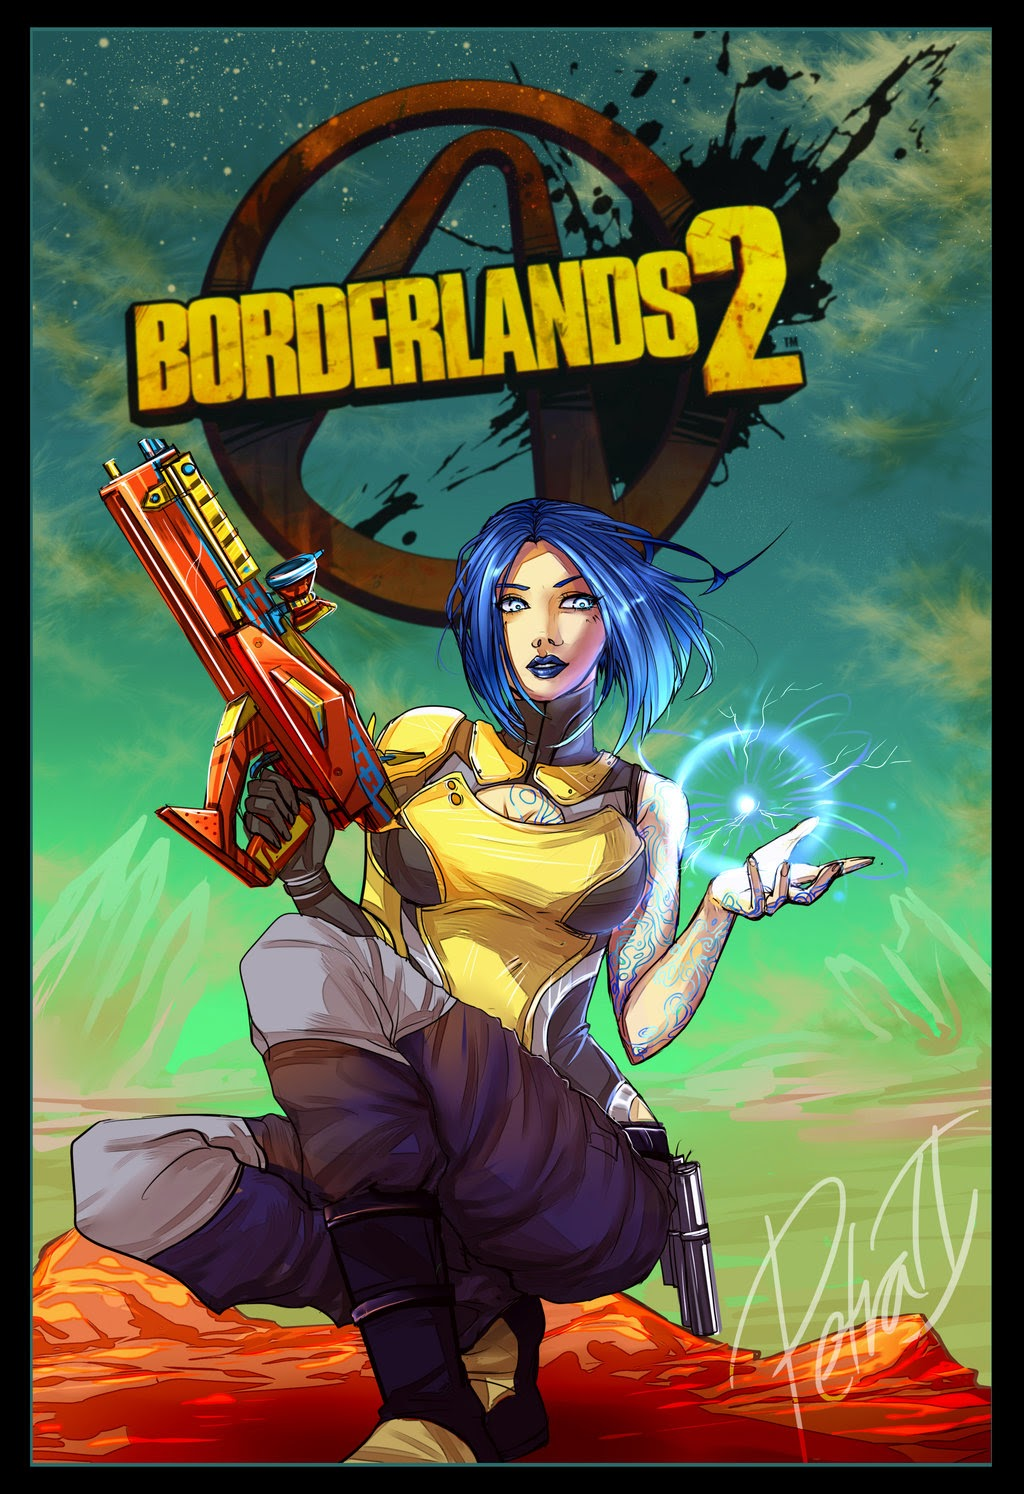 borderlands_2__maya_by_petradragoon_ii-d6v27gw